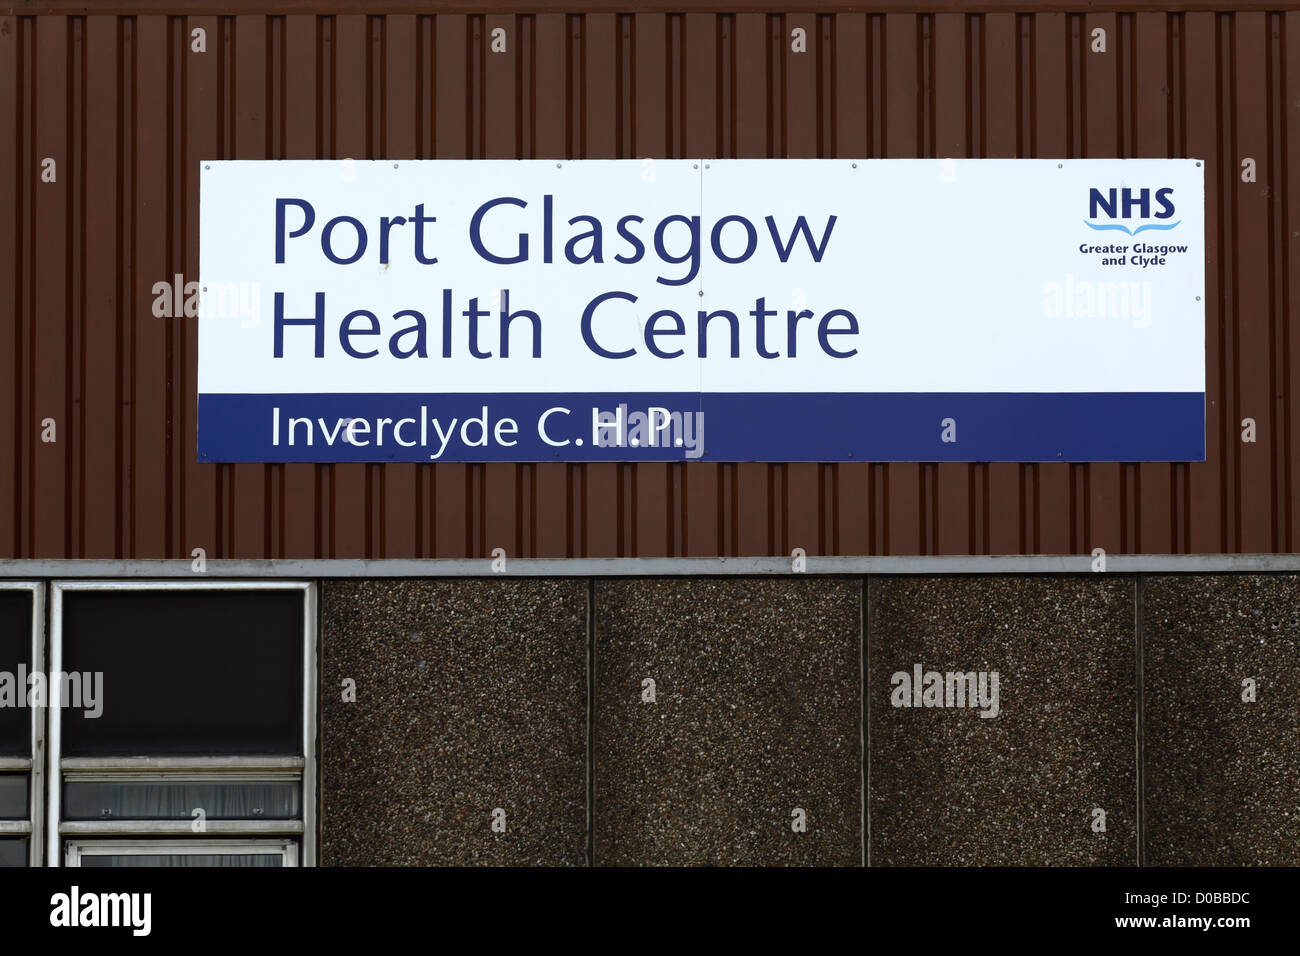 An NHS sign on Port Glasgow Health Centre (Inverclyde Community Health Partnership) Scotland, UK - Stock Image